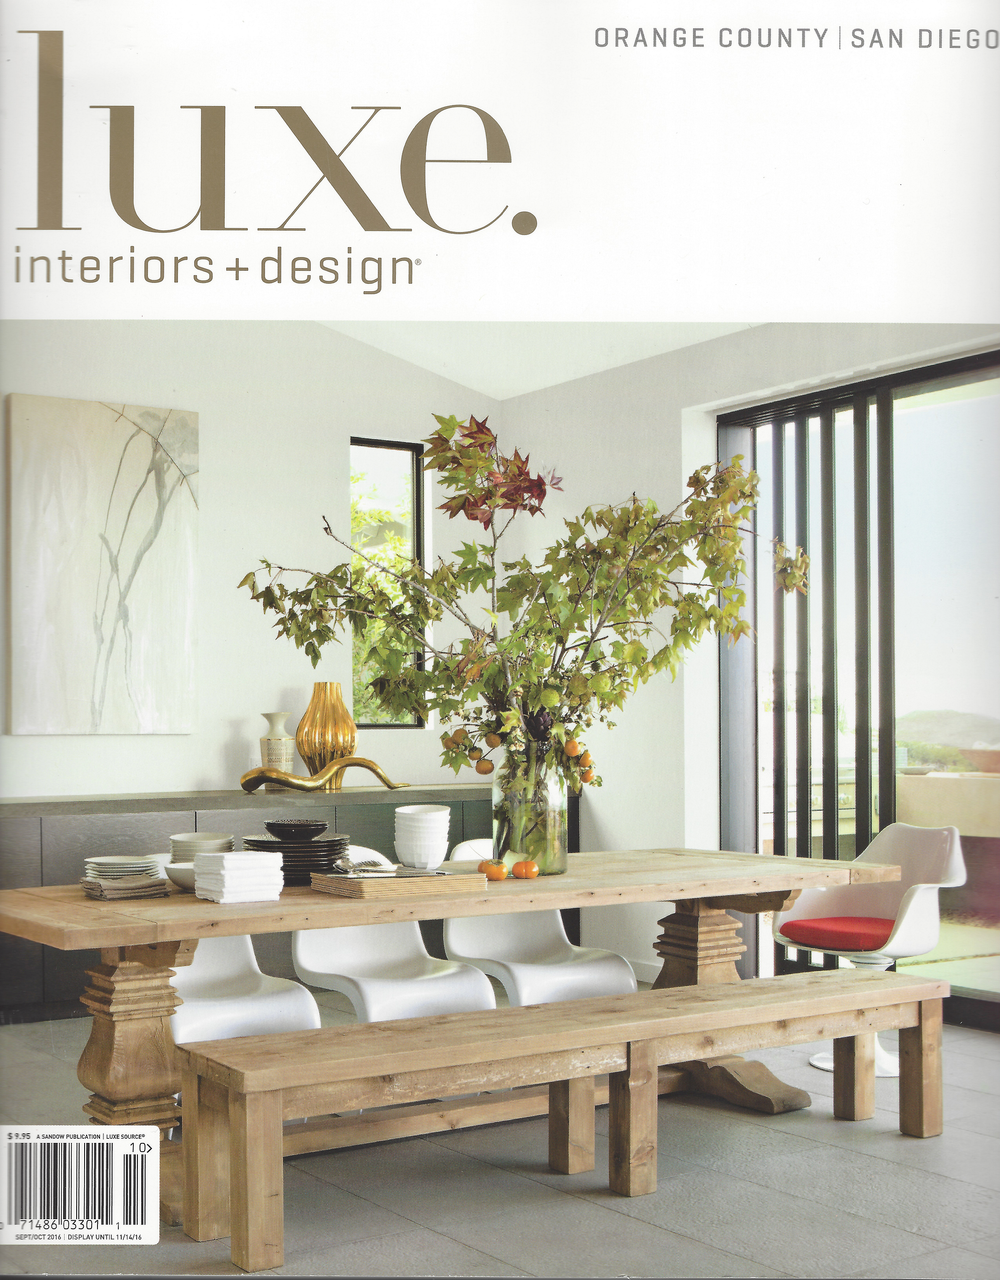 Luxe Interiors + Design Magazine San Diego Orange County